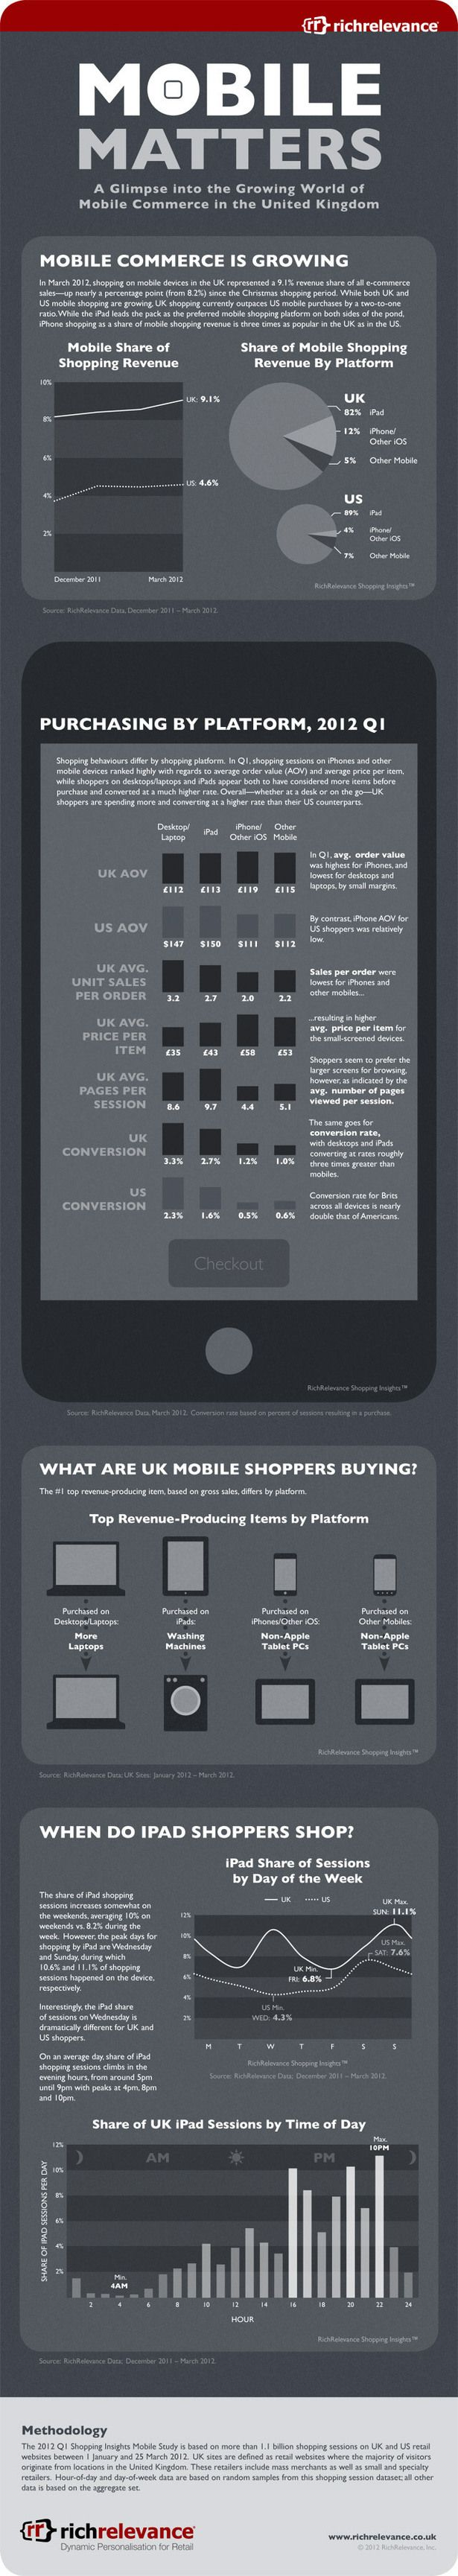 Brits are twice as likely as Americans to buy on #mobile: stats - #Infographic